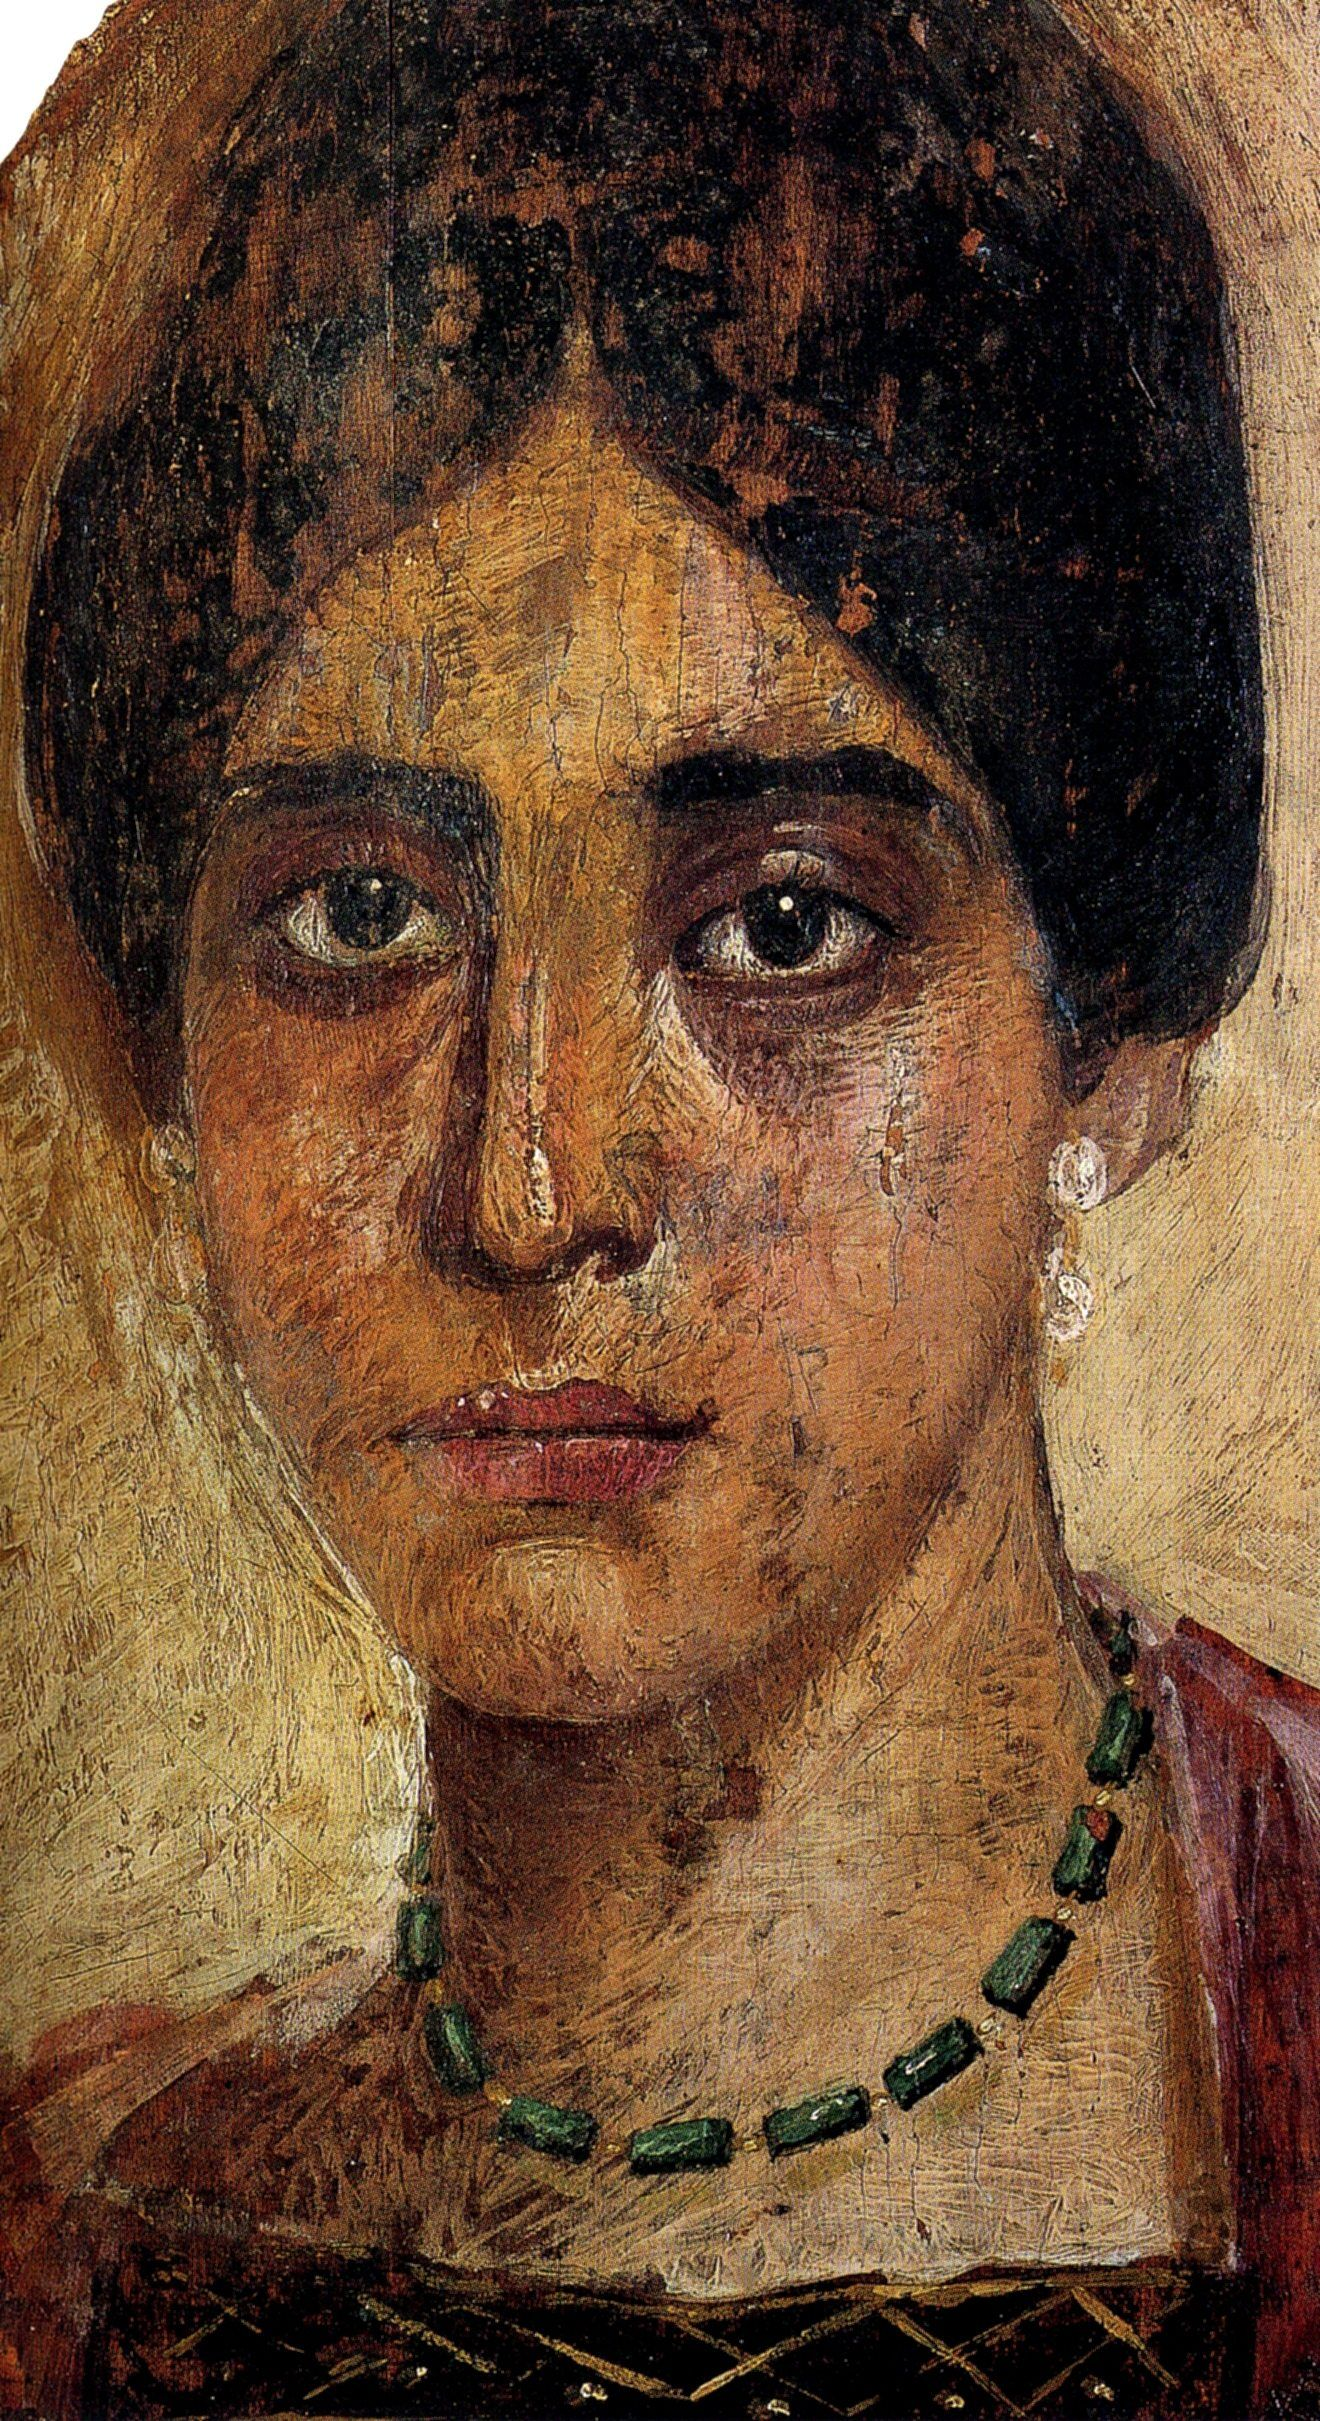 Pittura Romana Fayum Fayum Mummy Portraits The Earliest Painted Portraits Color